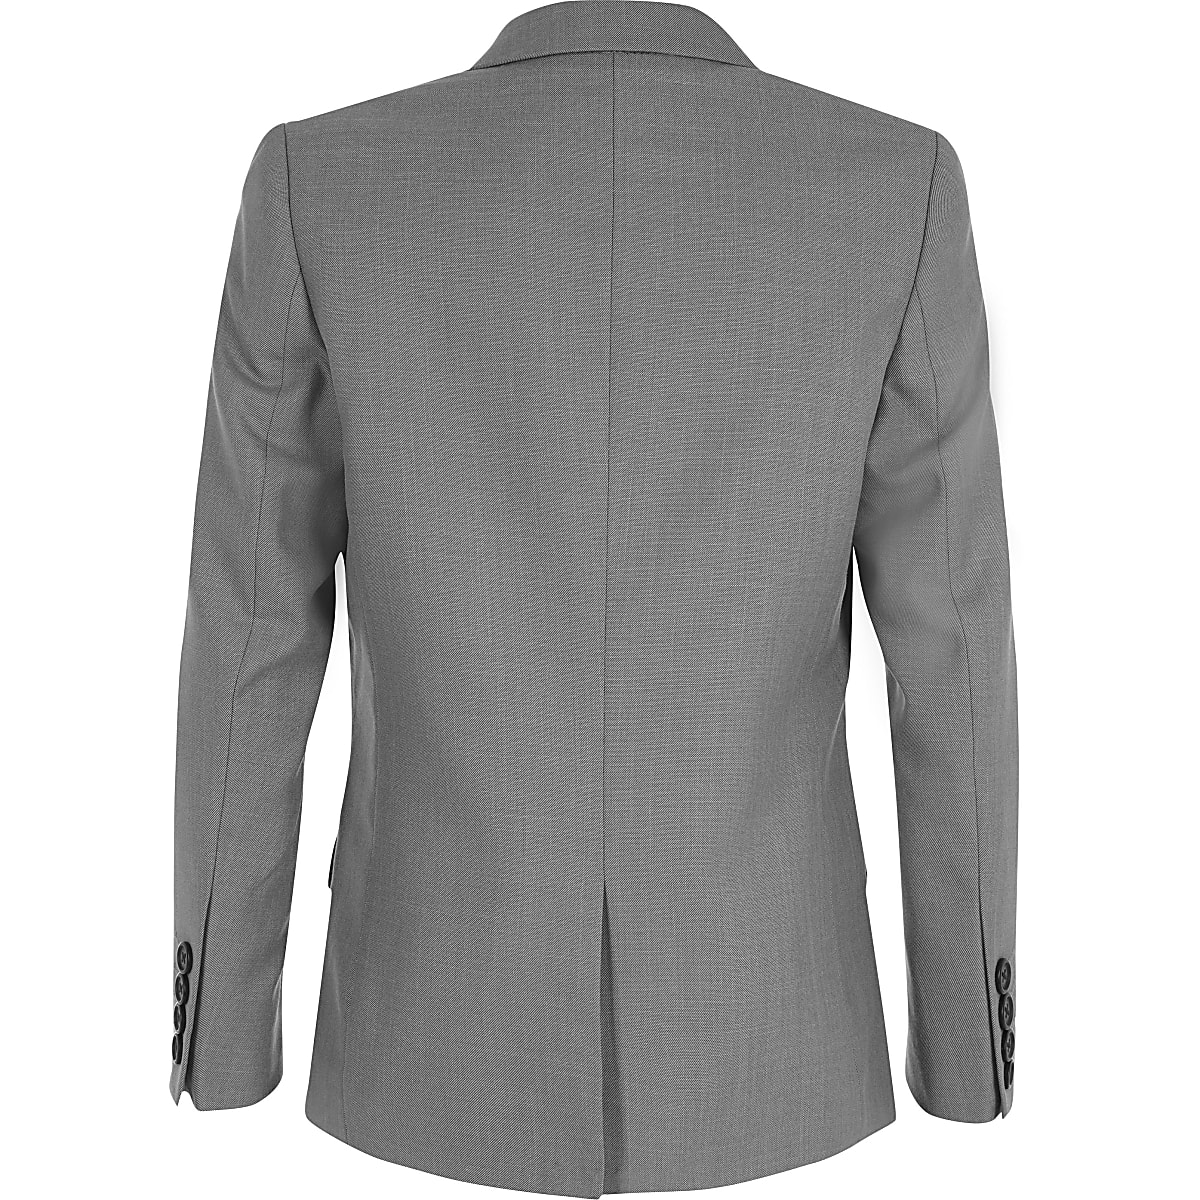 Boys Grey Suit Blazer Jacket Suit Jackets Suits Boys